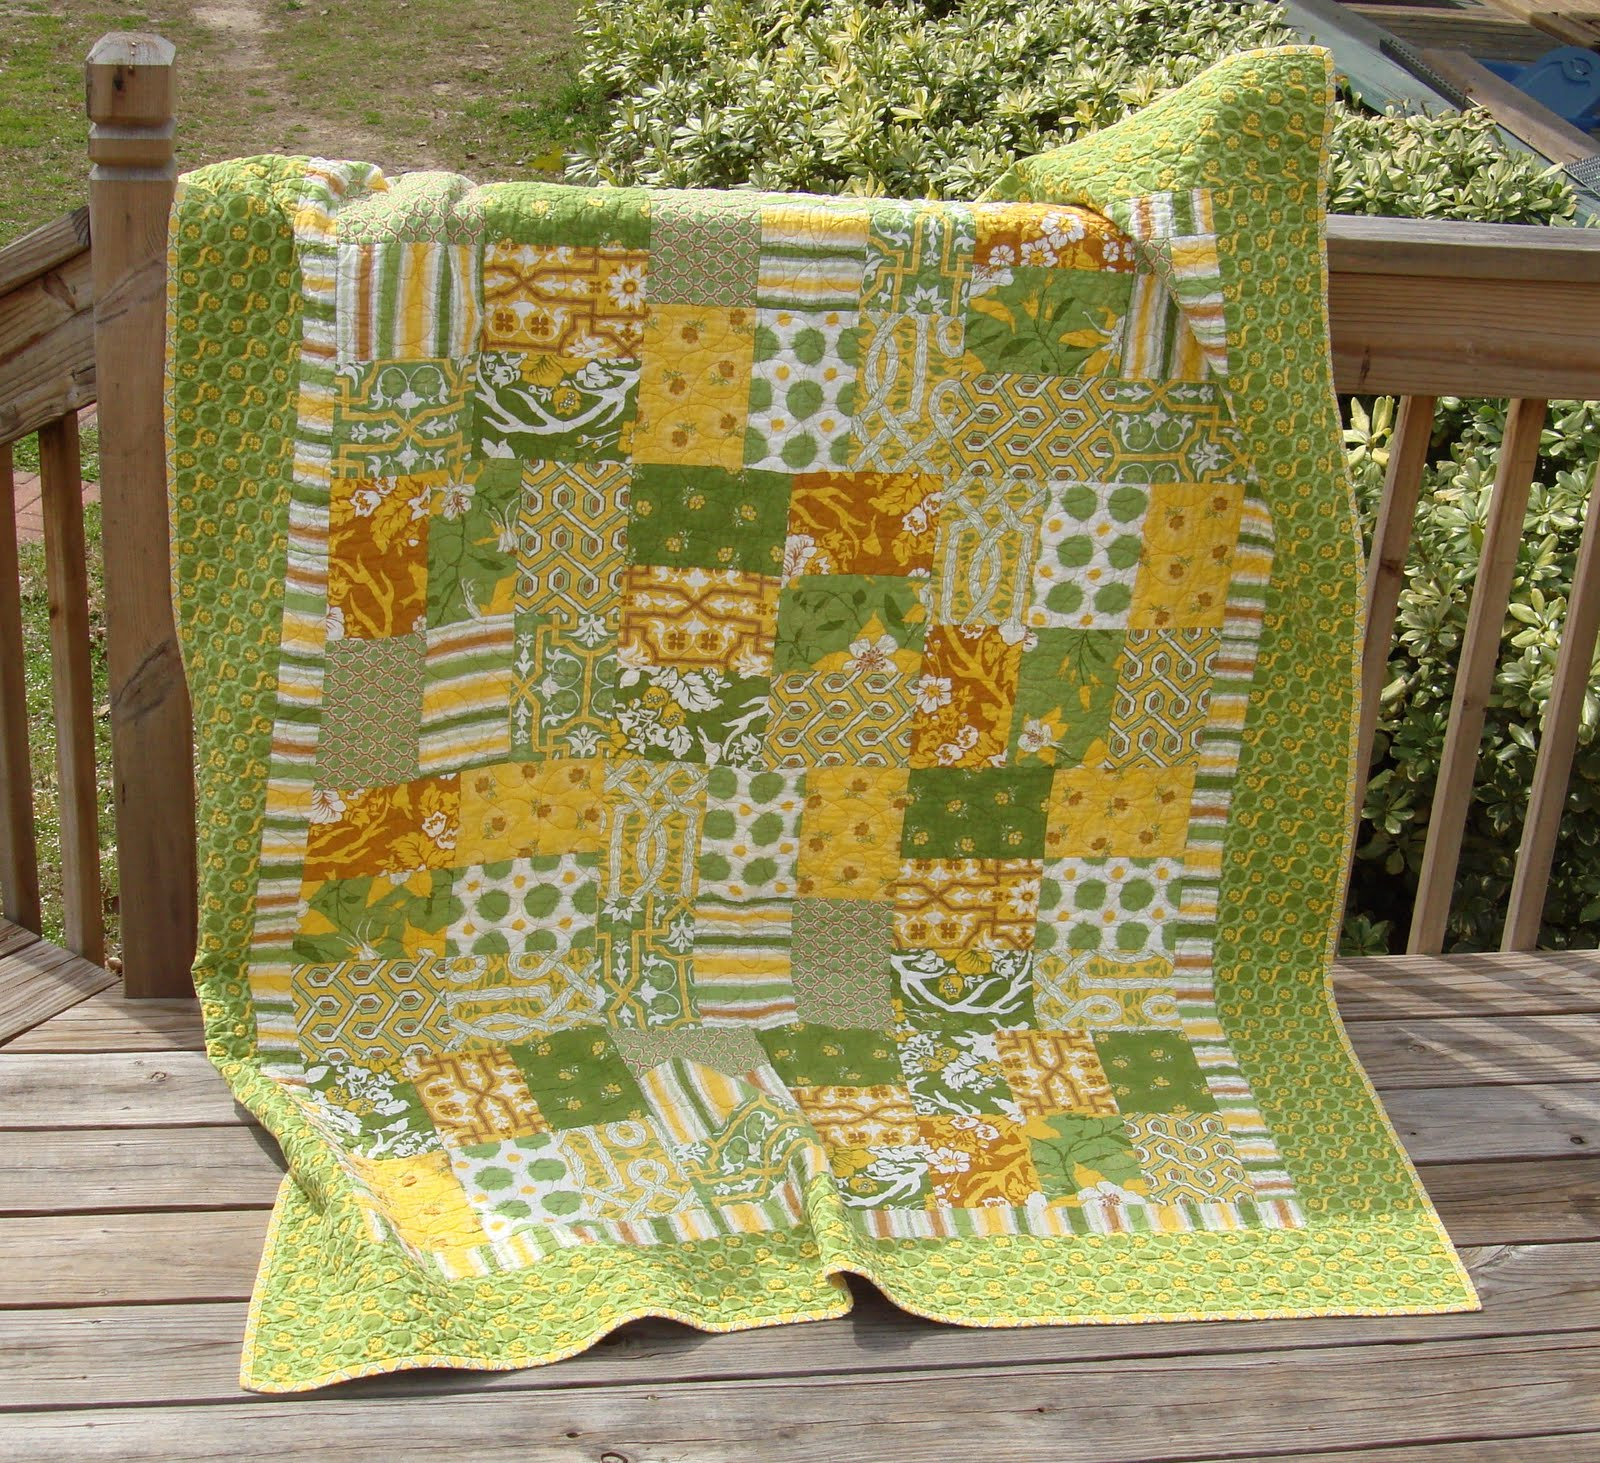 my kit quilting bound be to is store green maywood garden products favorite studio how quilt